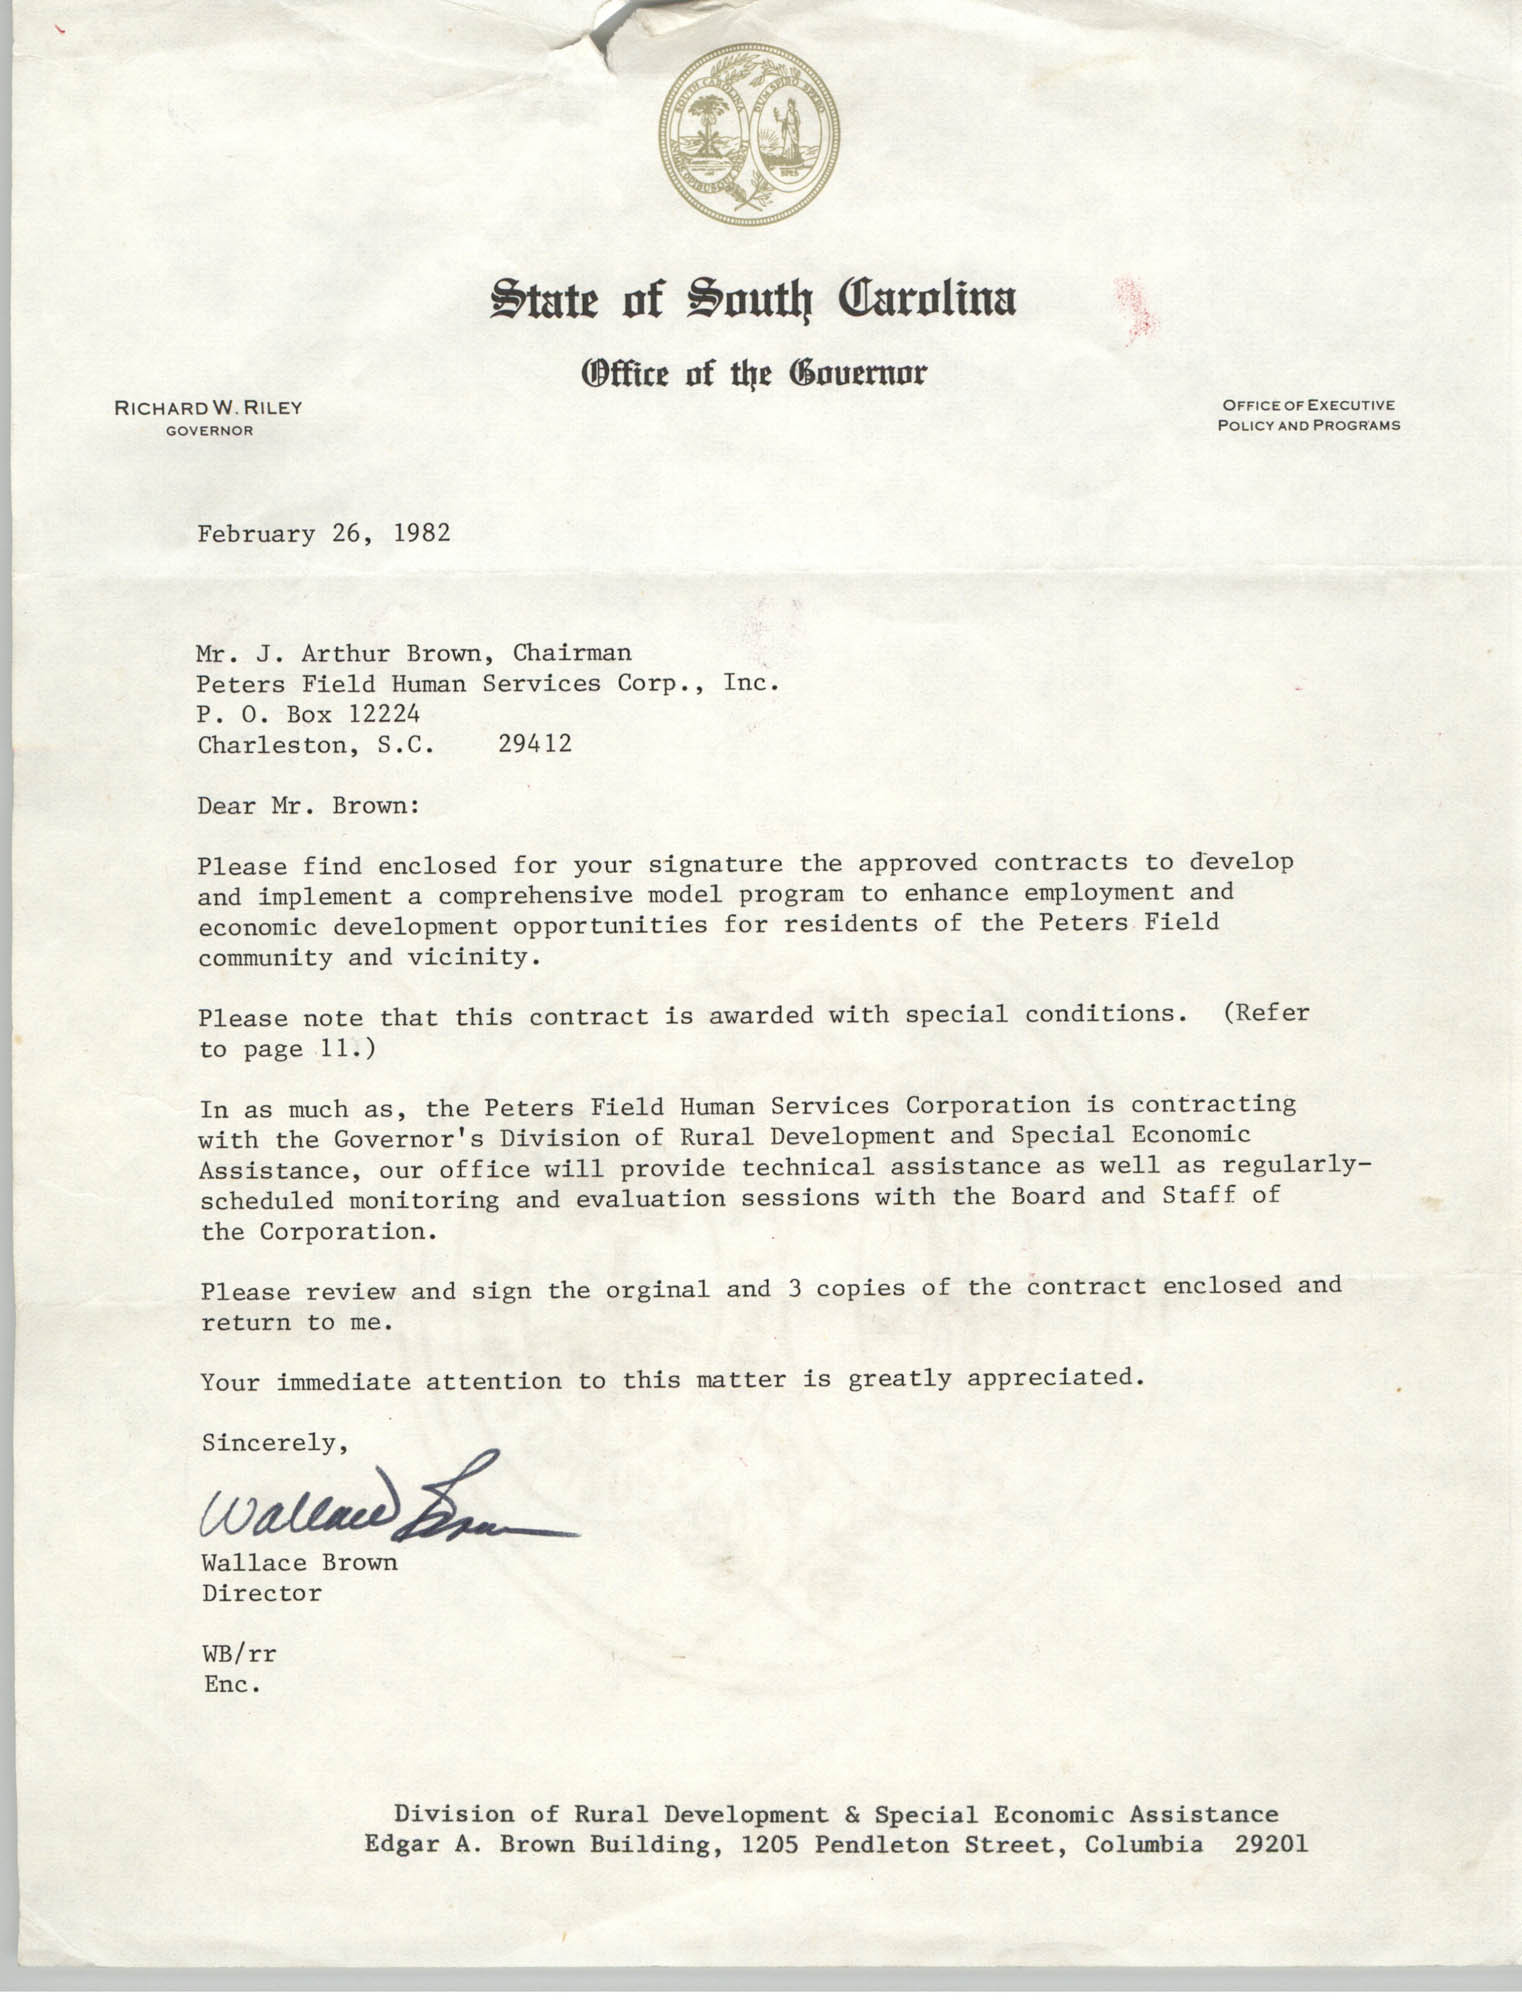 Letter from Wallace Brown to J. Arthur Brown, February 26, 1982